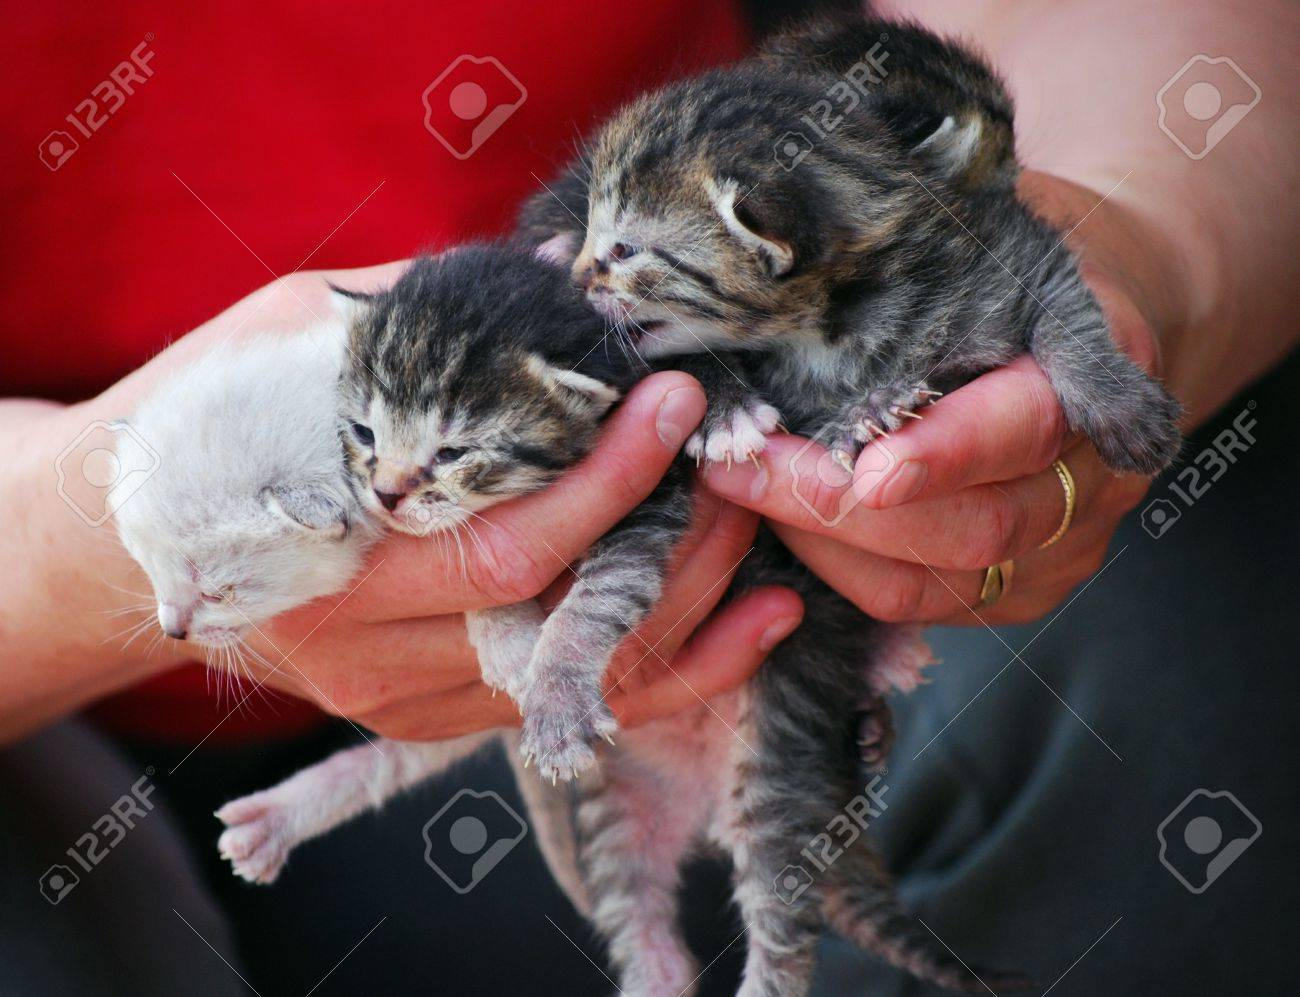 kittens Stock Photo - 4833936